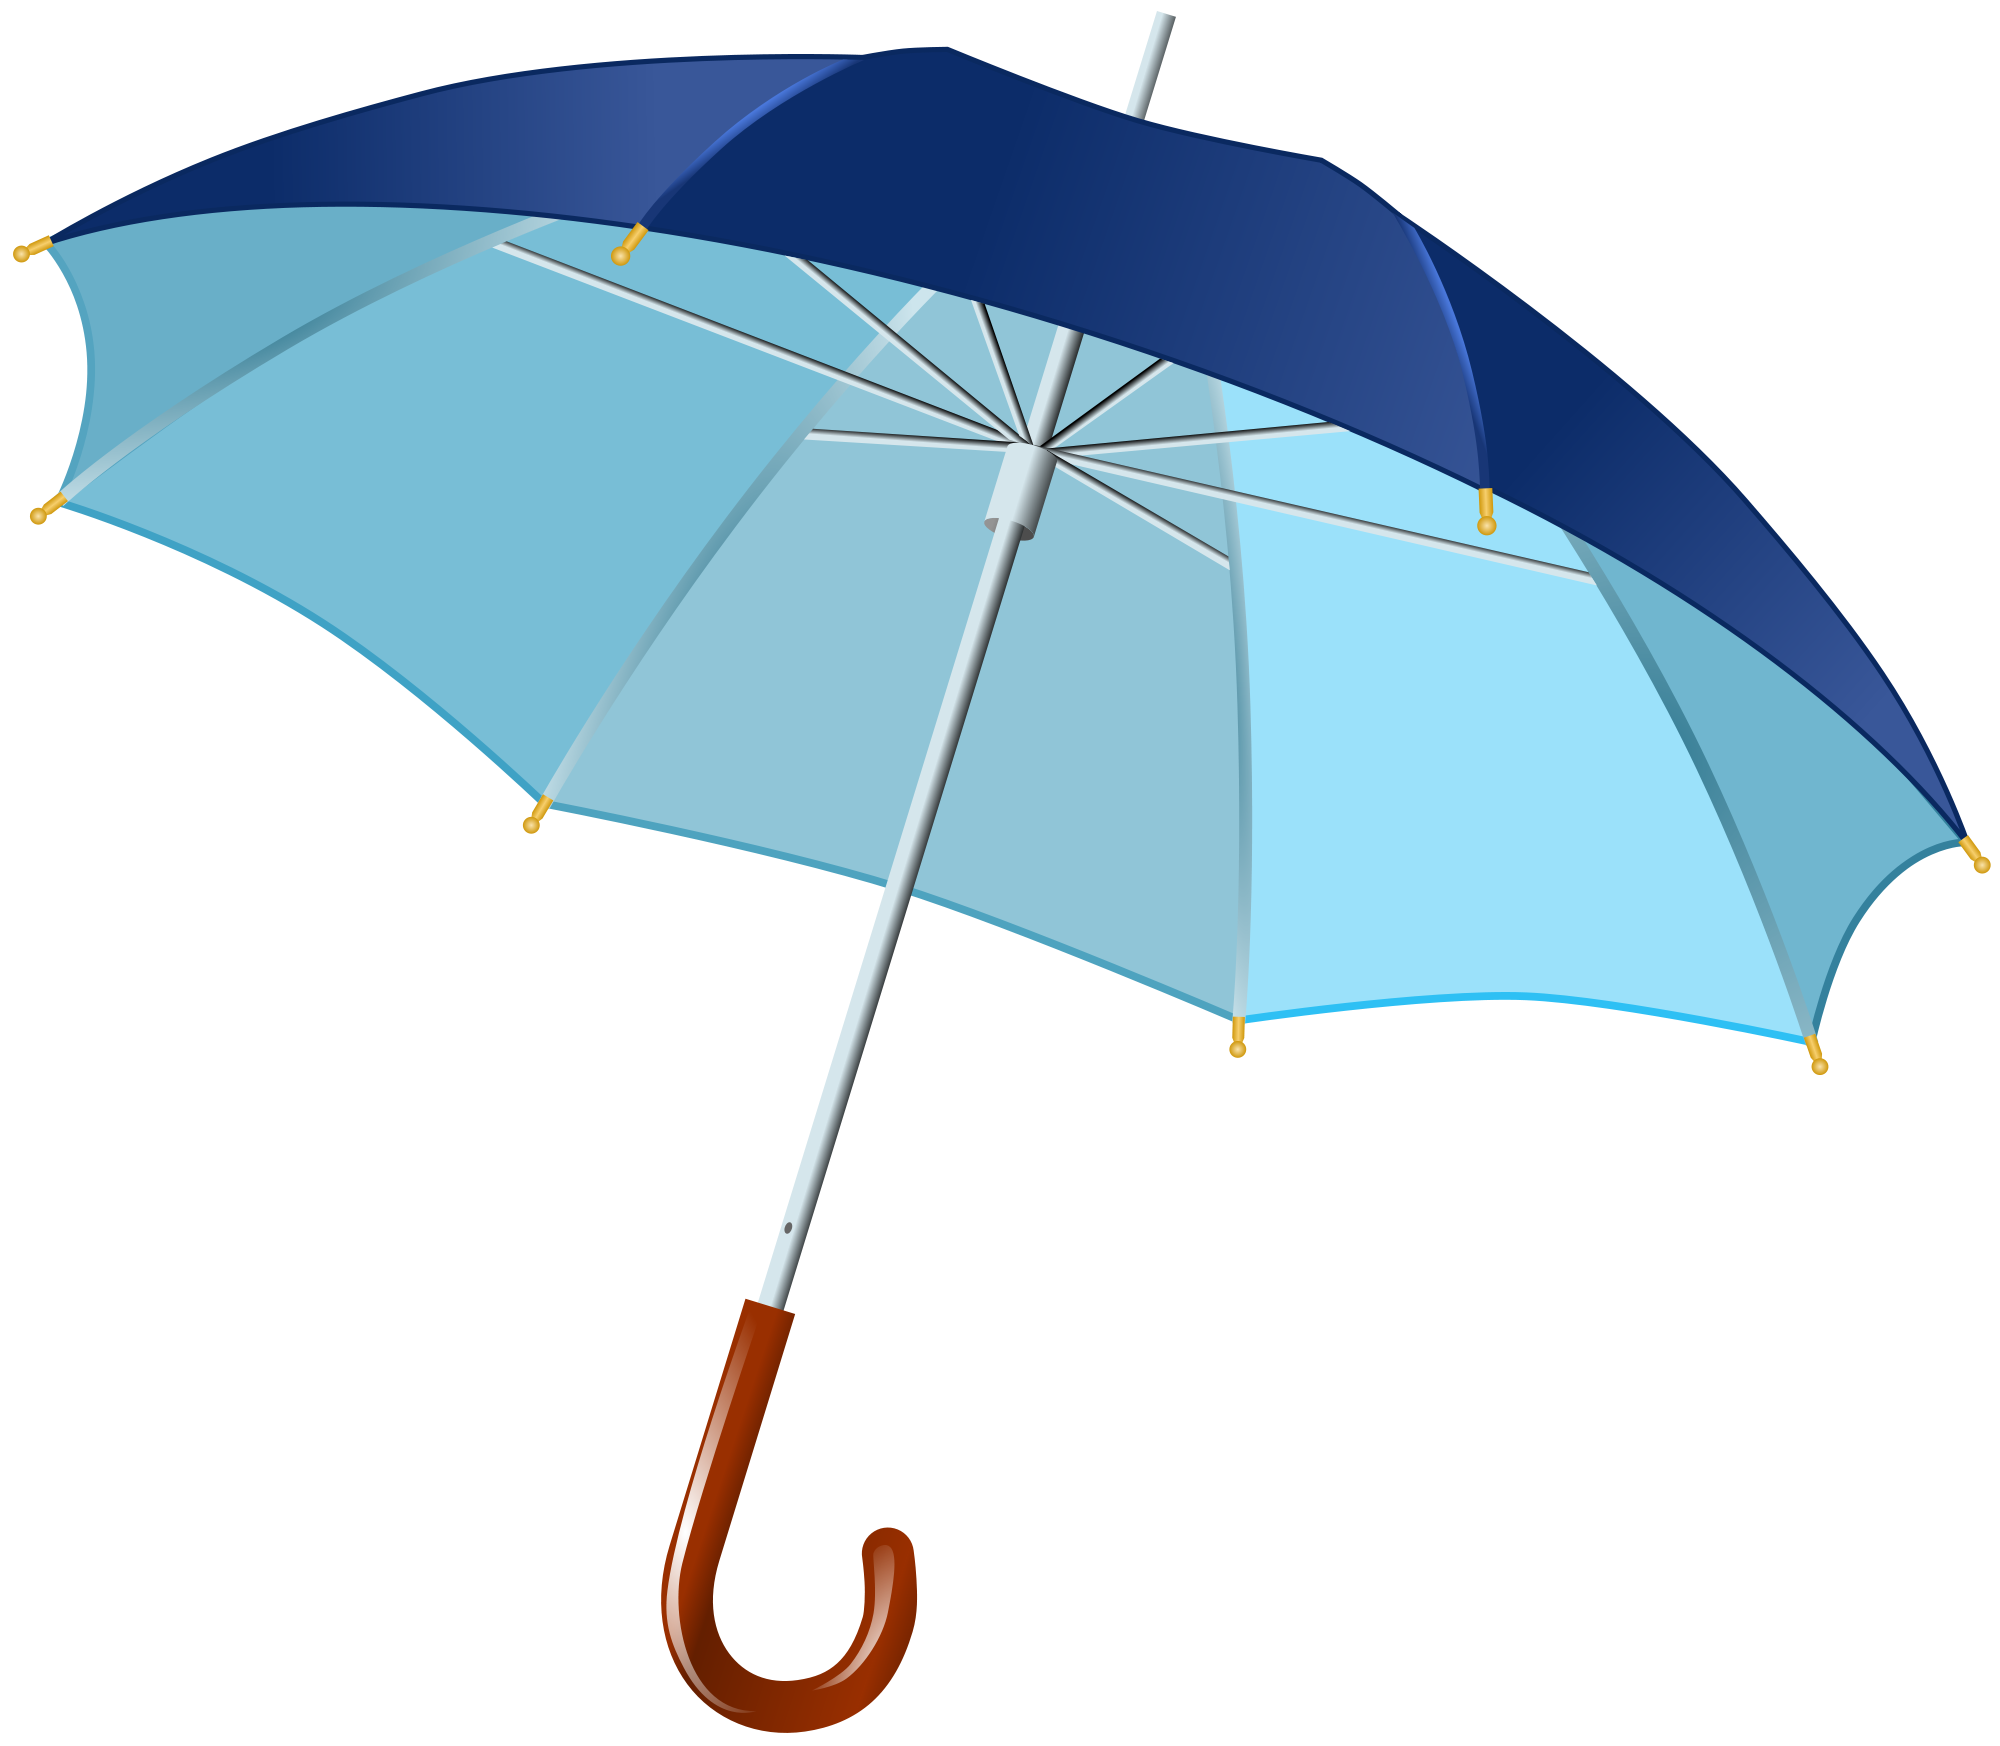 Umbrella clipart file. Opened svg wikimedia commons